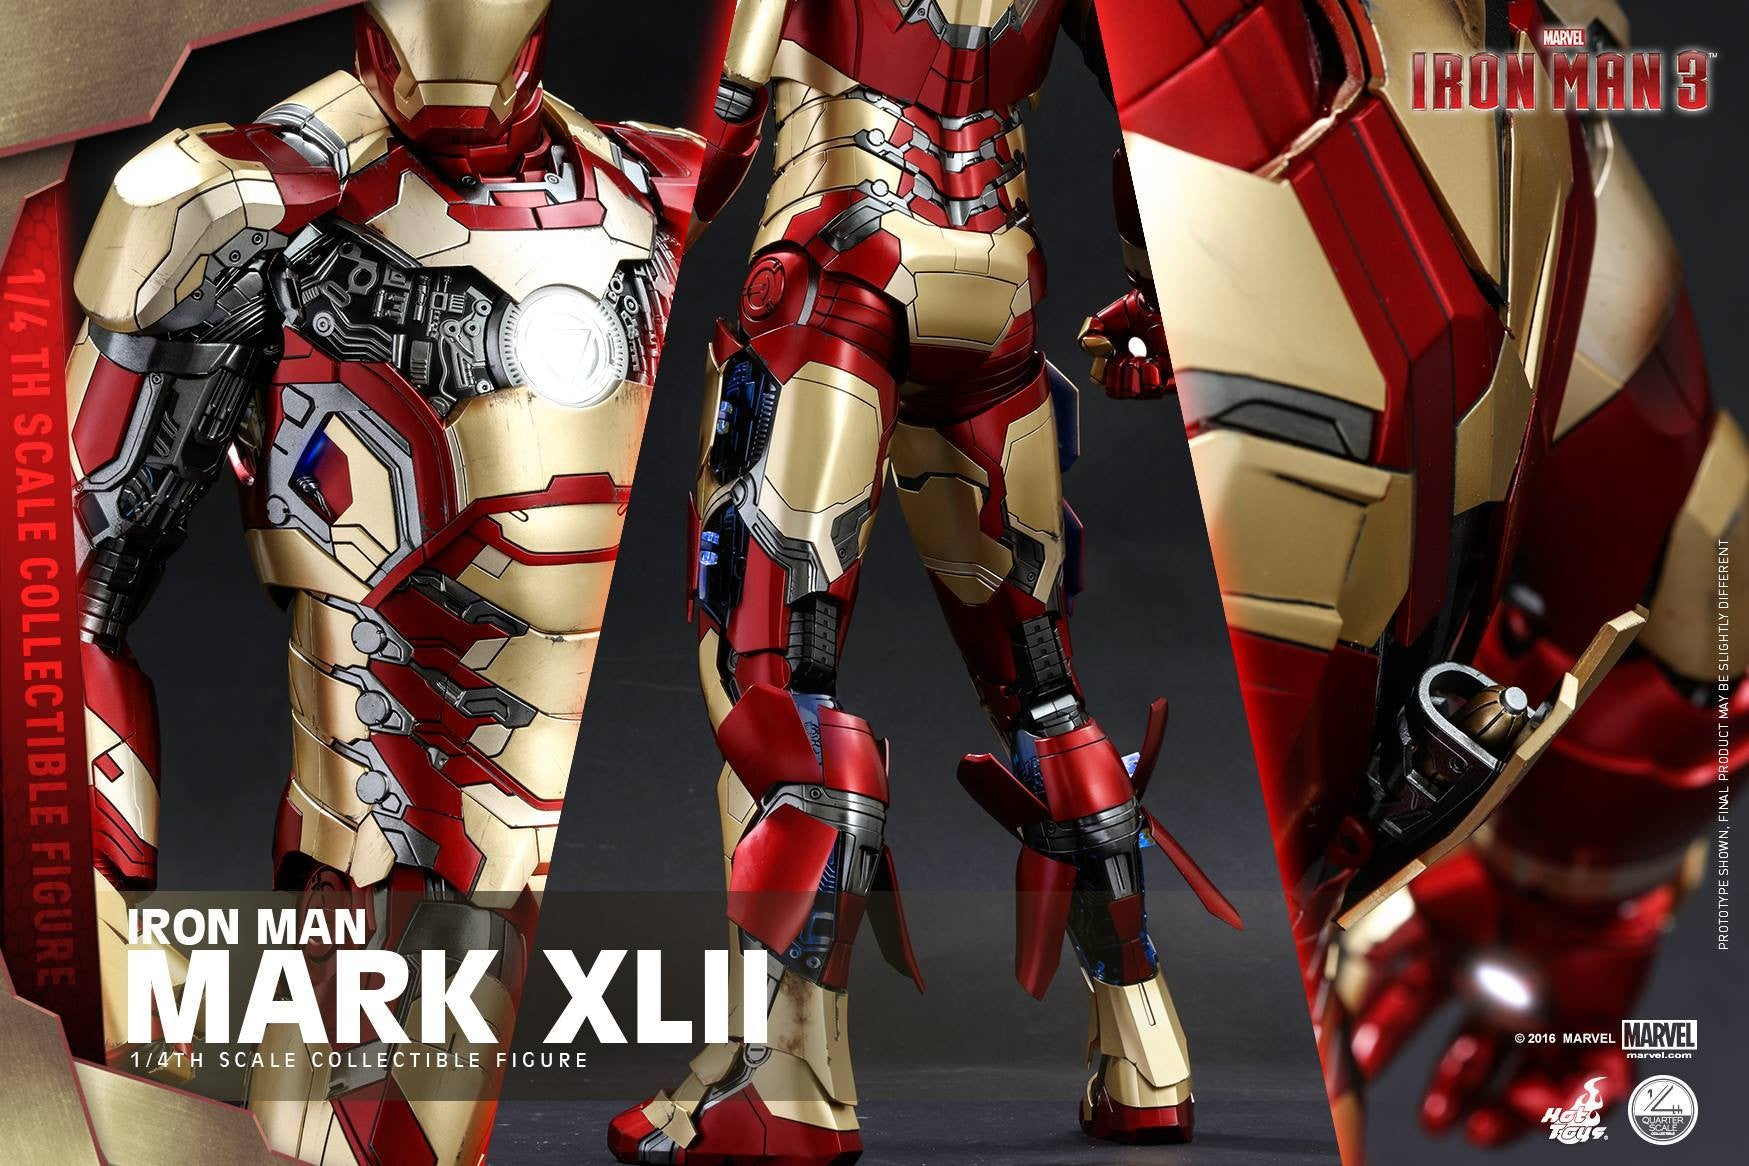 Hot Toys - QS007 - Iron Man 3 - 1/4th scale Mark XLII - Marvelous Toys - 5